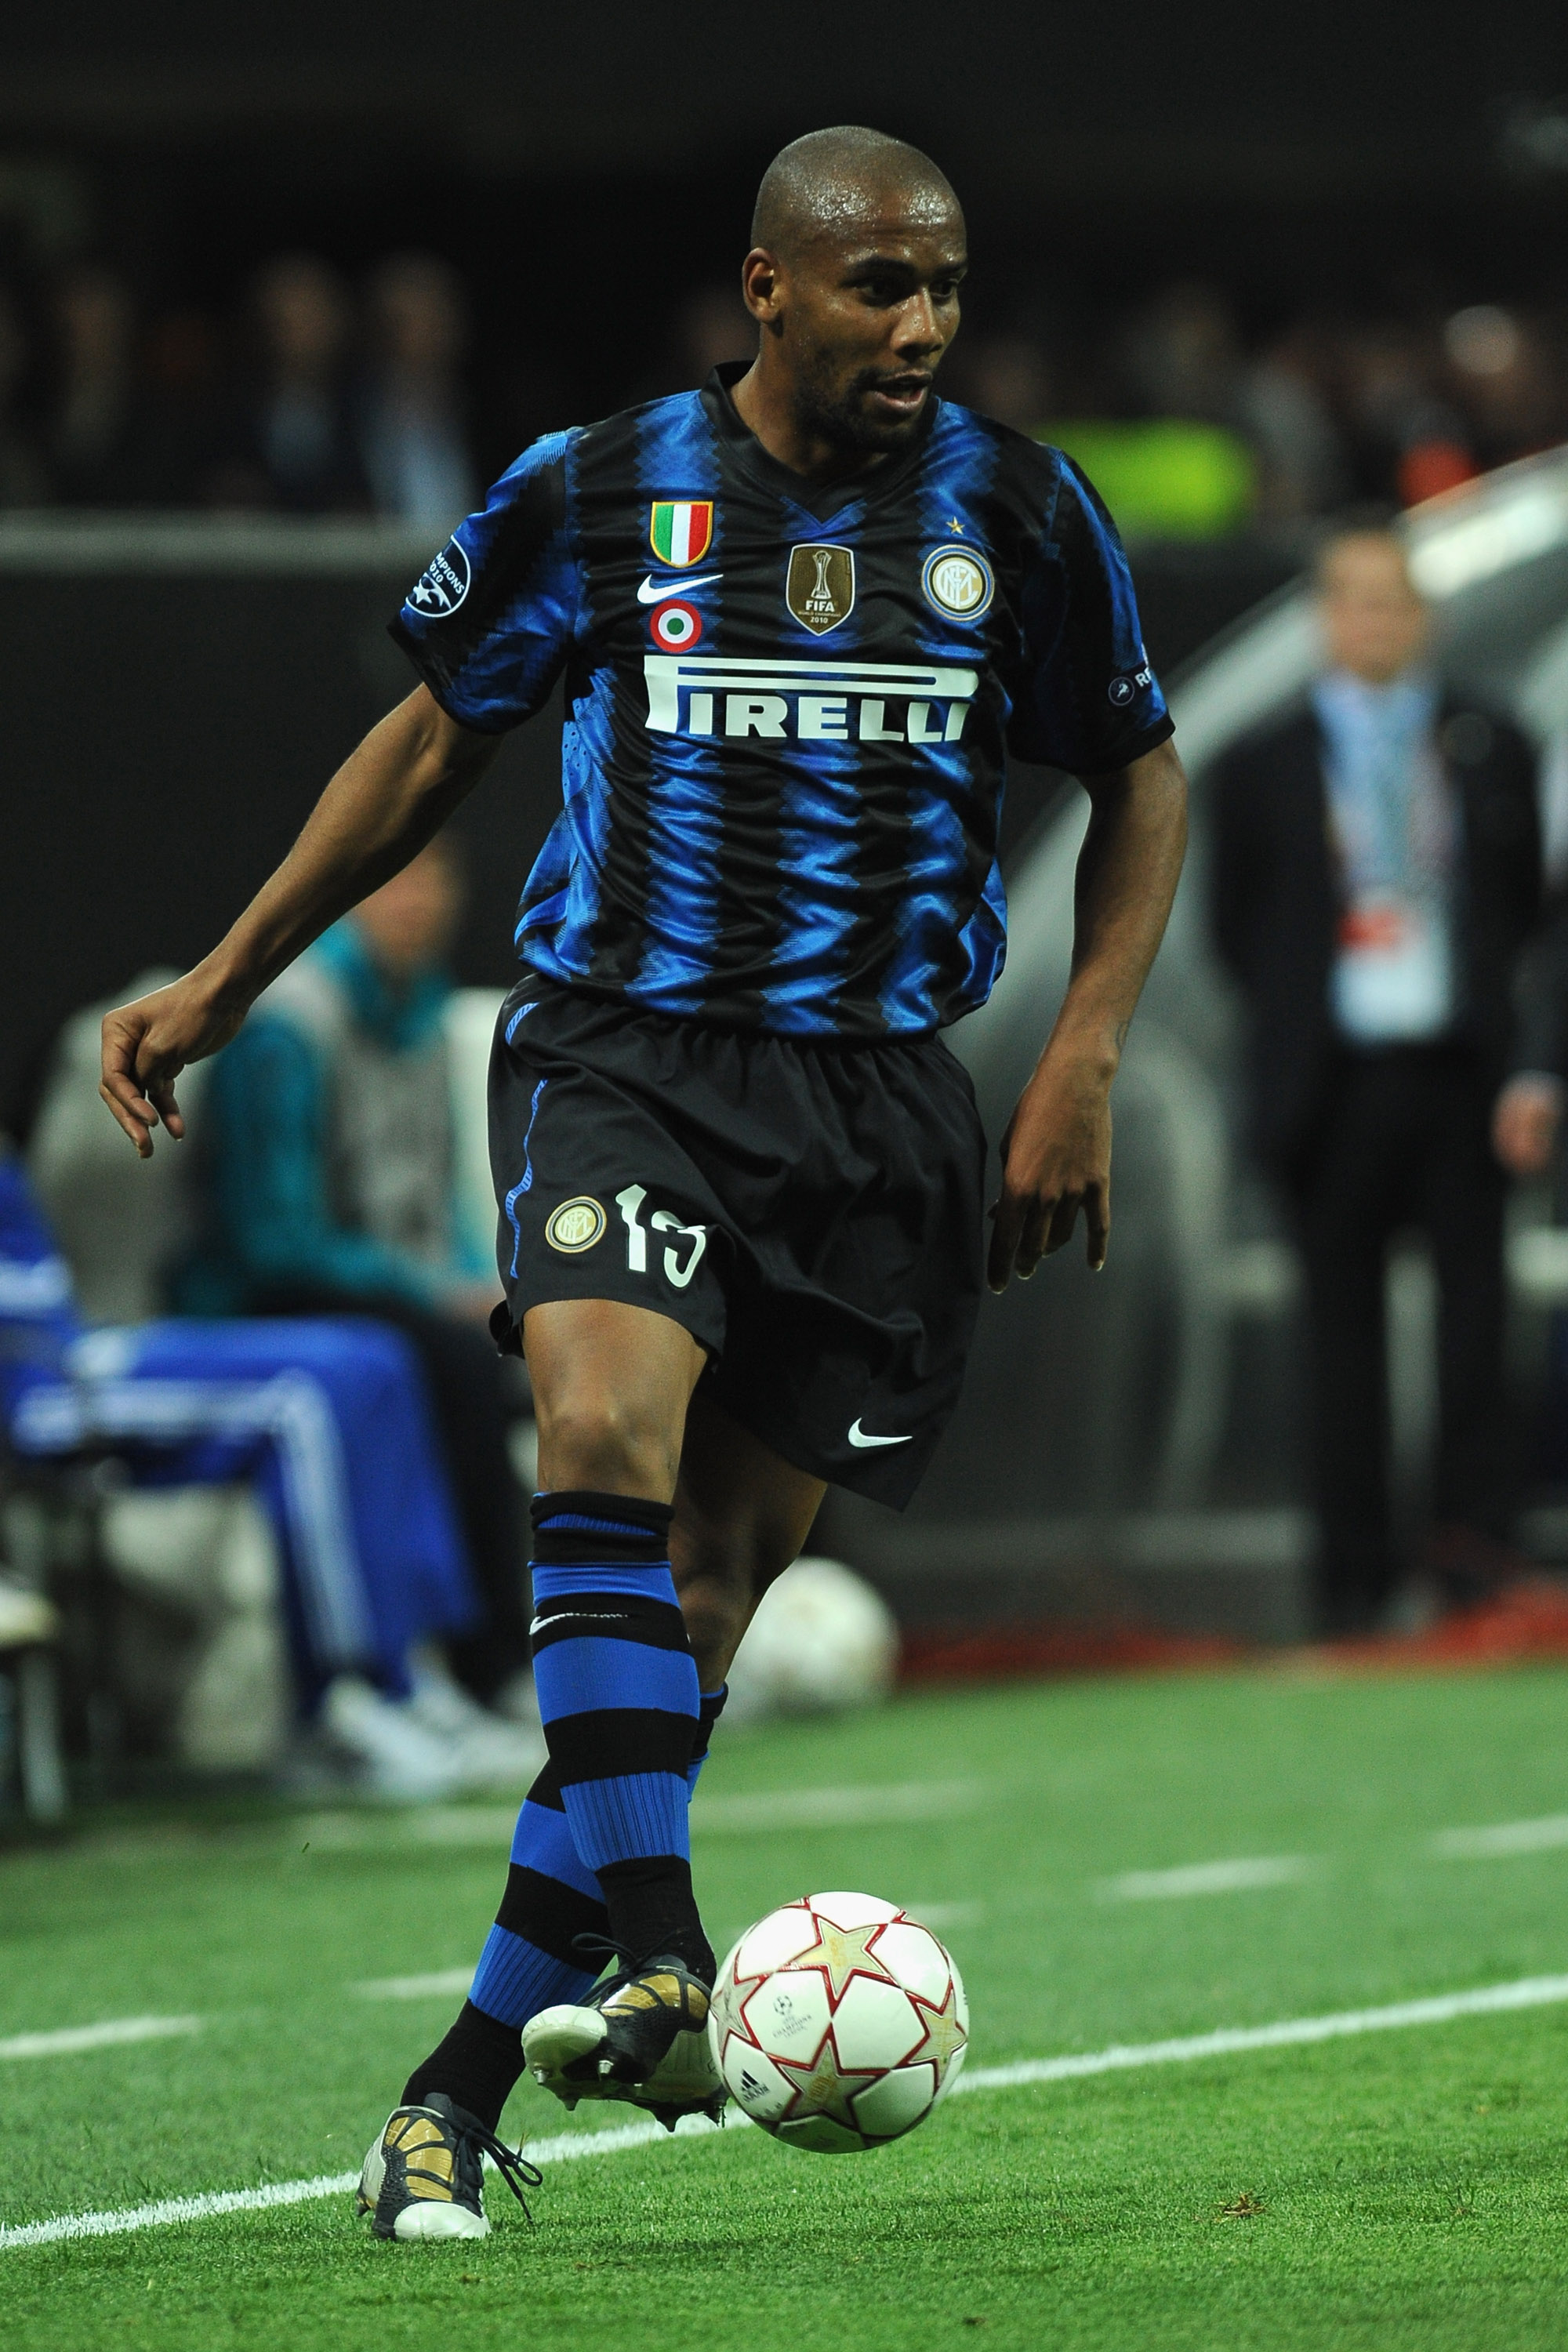 MILAN, ITALY - APRIL 05:  Douglas Maicon of FC Internazionale Milano runs with the ball during the UEFA Champions League Quarter Final match between FC Internazionale Milano and Schalke 04 at San Siro Stadium on April 5, 2011 in Milan, Italy.  (Photo by V